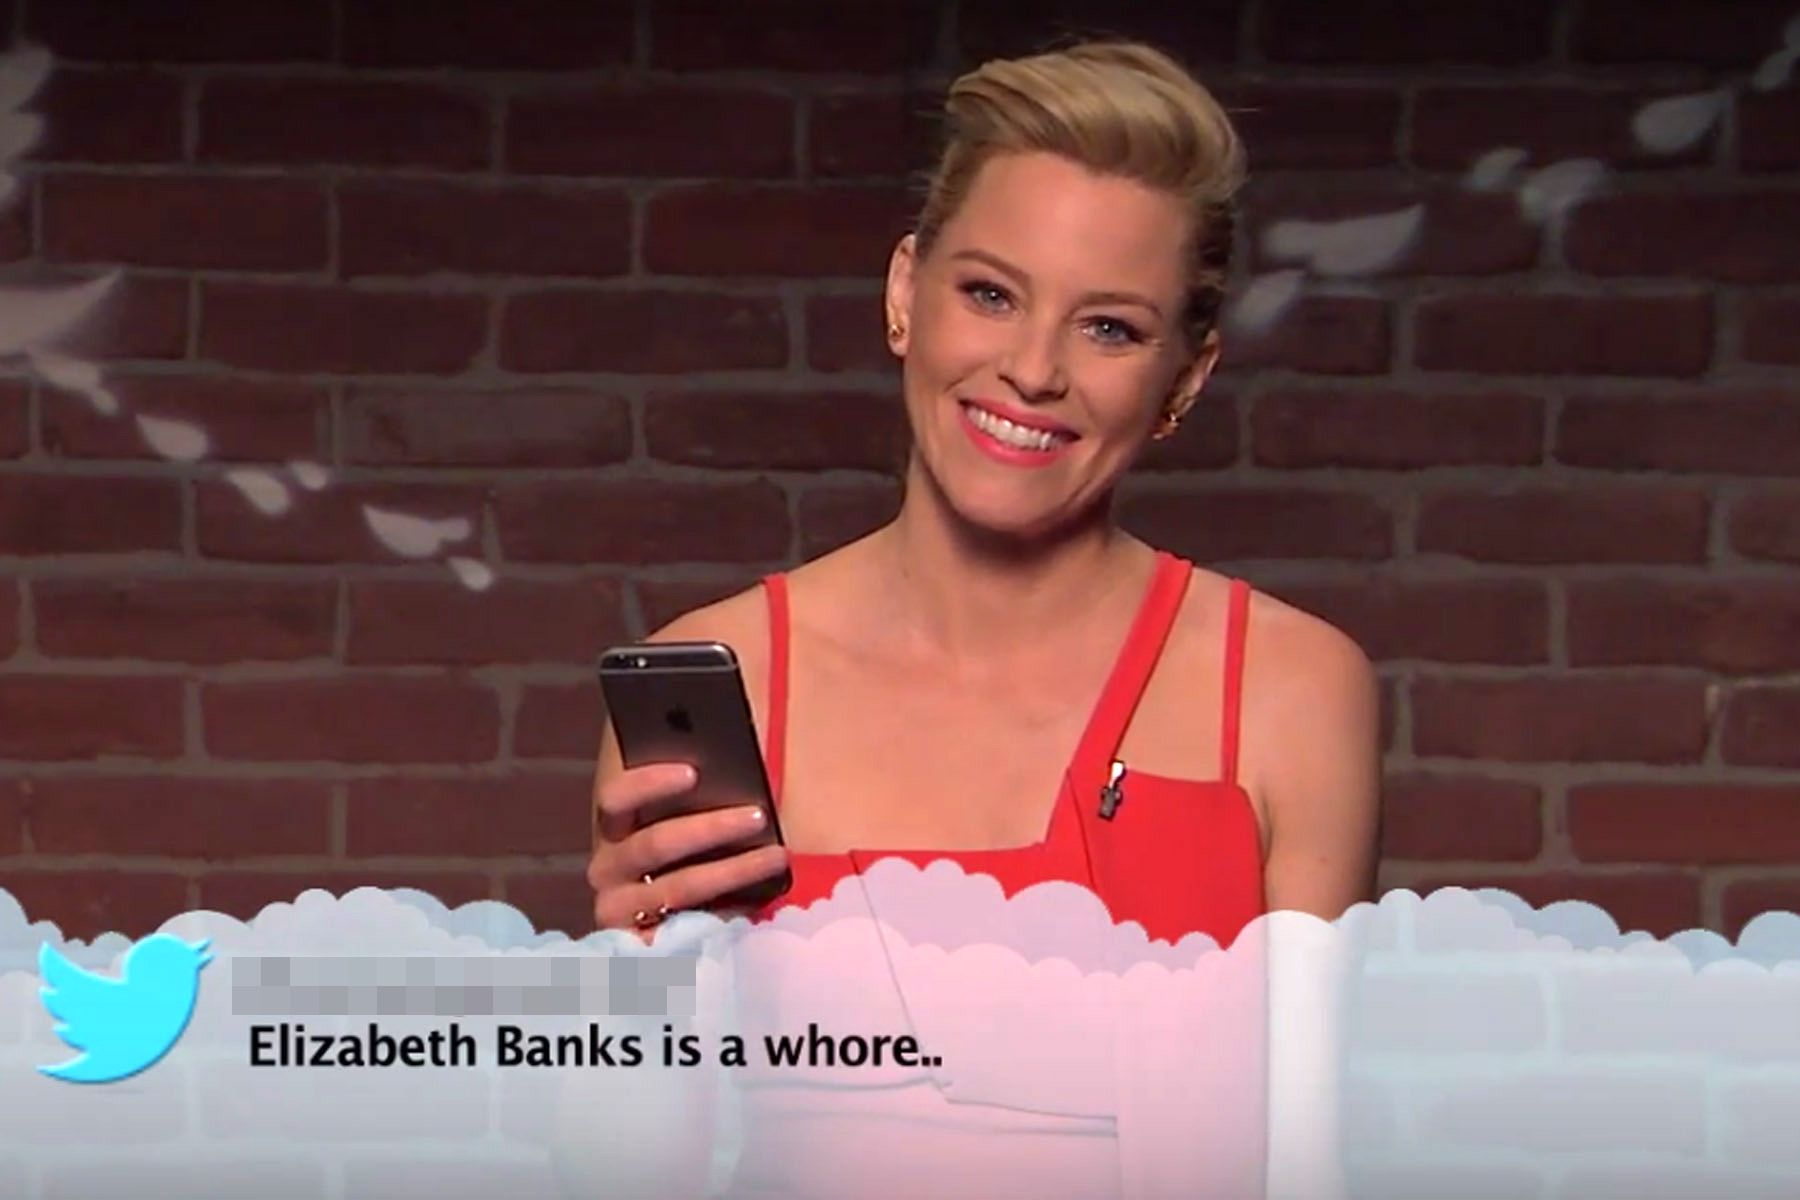 17 Of The Most Hilarious Celebrity Twitter Fails